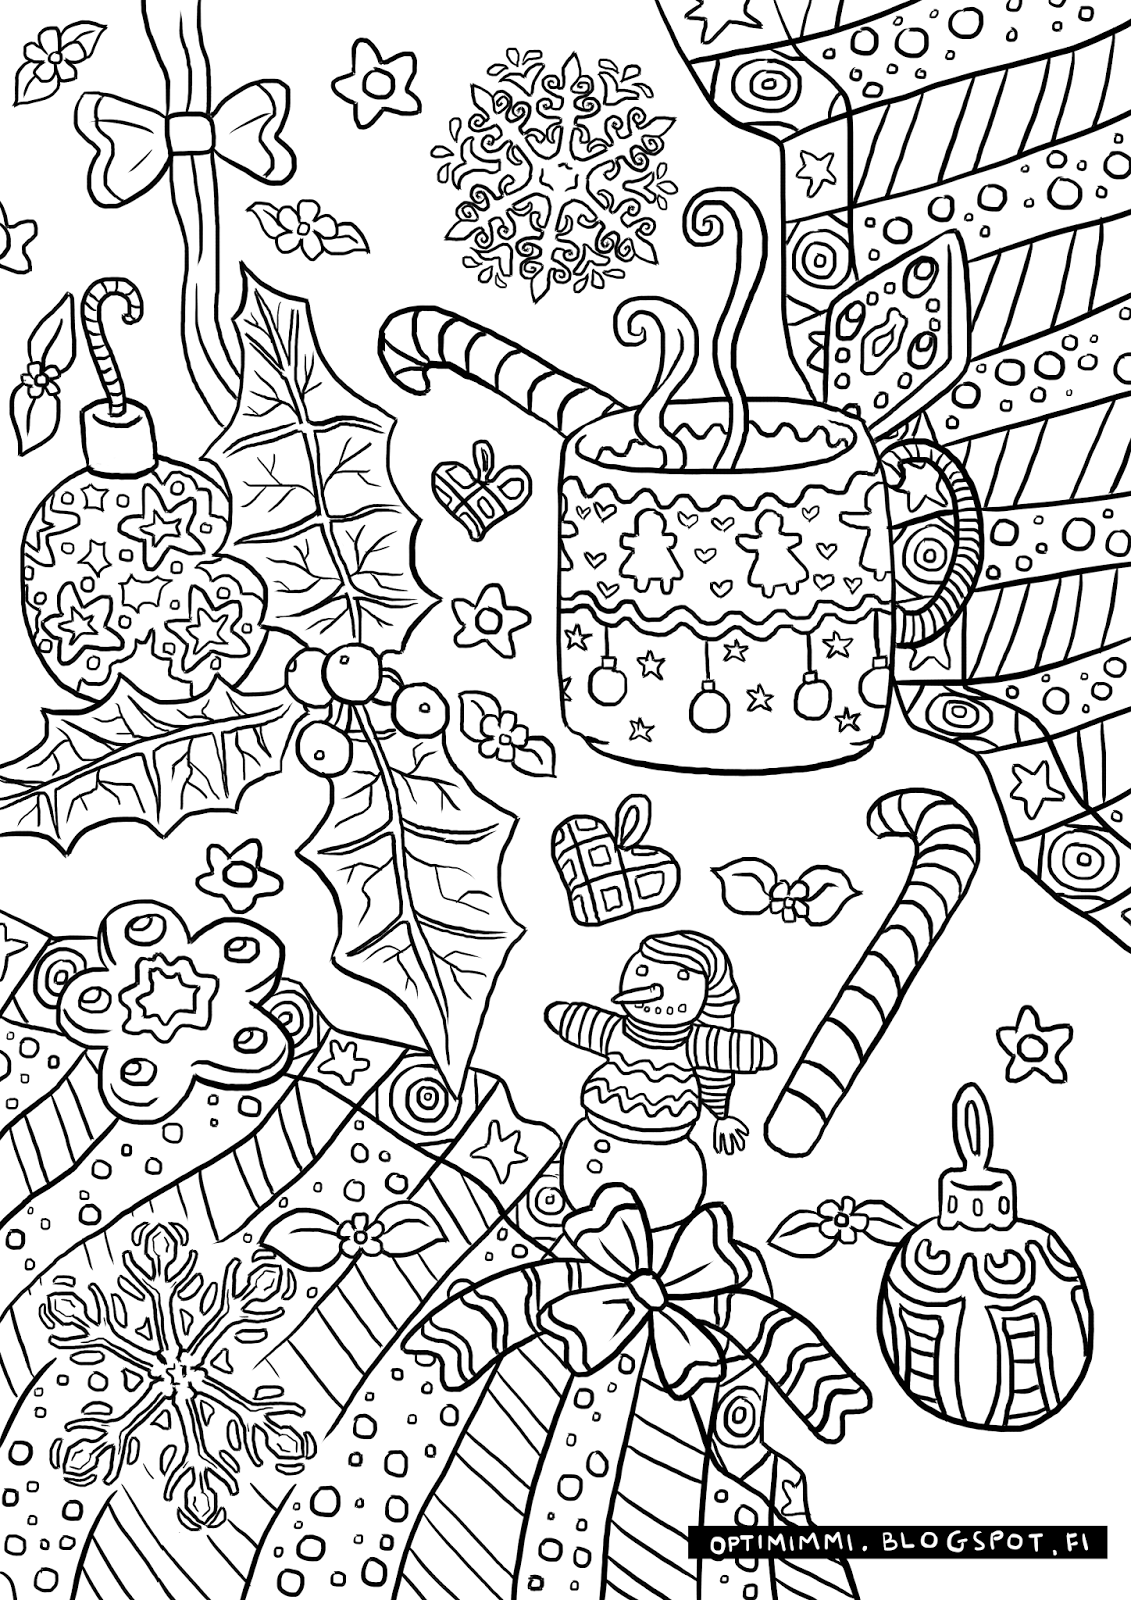 coloring book themes here are some pirate theme colouring pages for you to book themes coloring